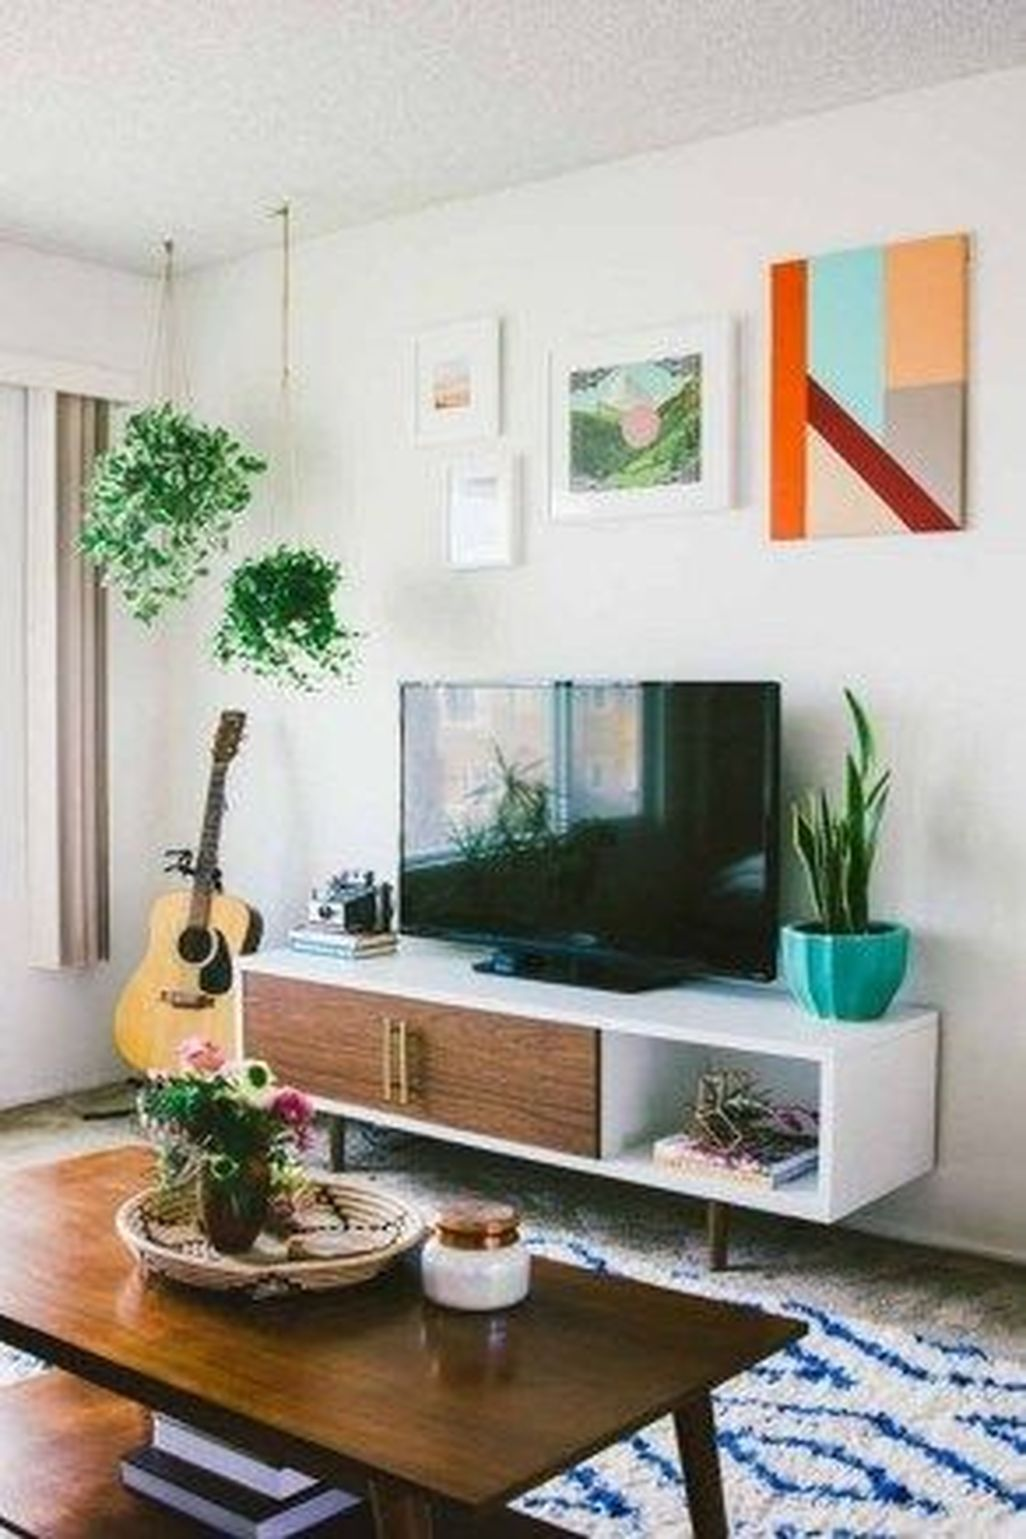 45 Affordable First Apartment Decorating Ideas on a Budget ...